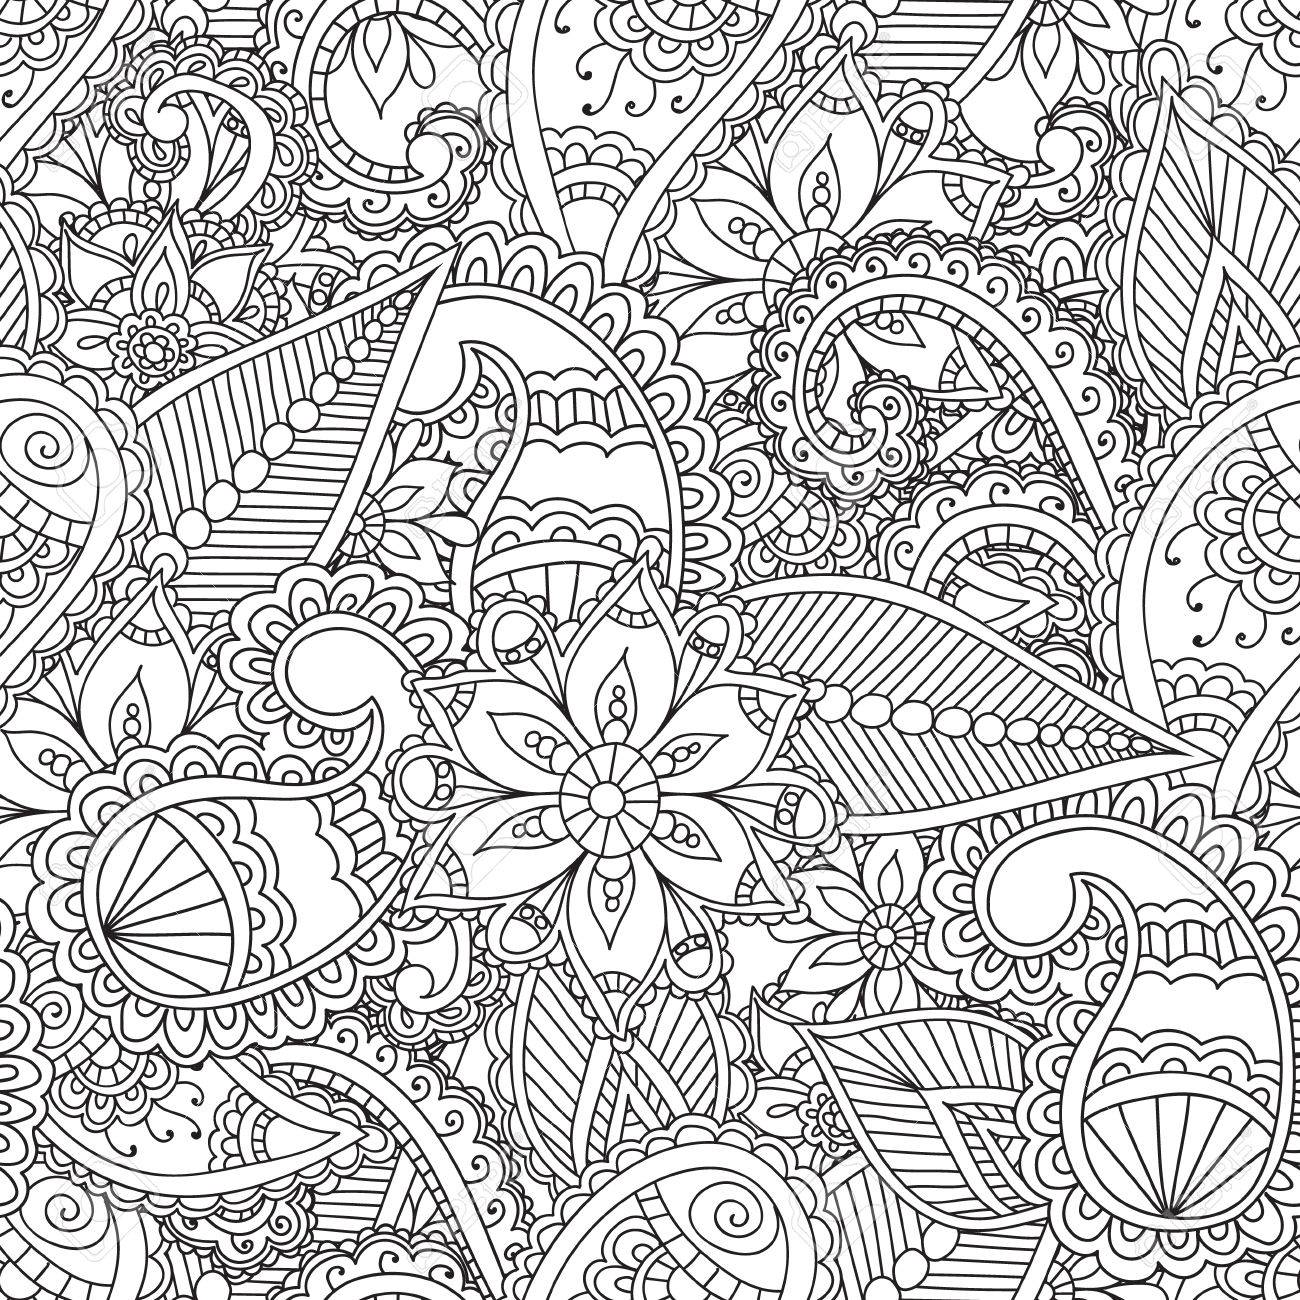 1300x1300 Coloring Pages For Adults. Seamless Pattern.henna Mehndi Doodles